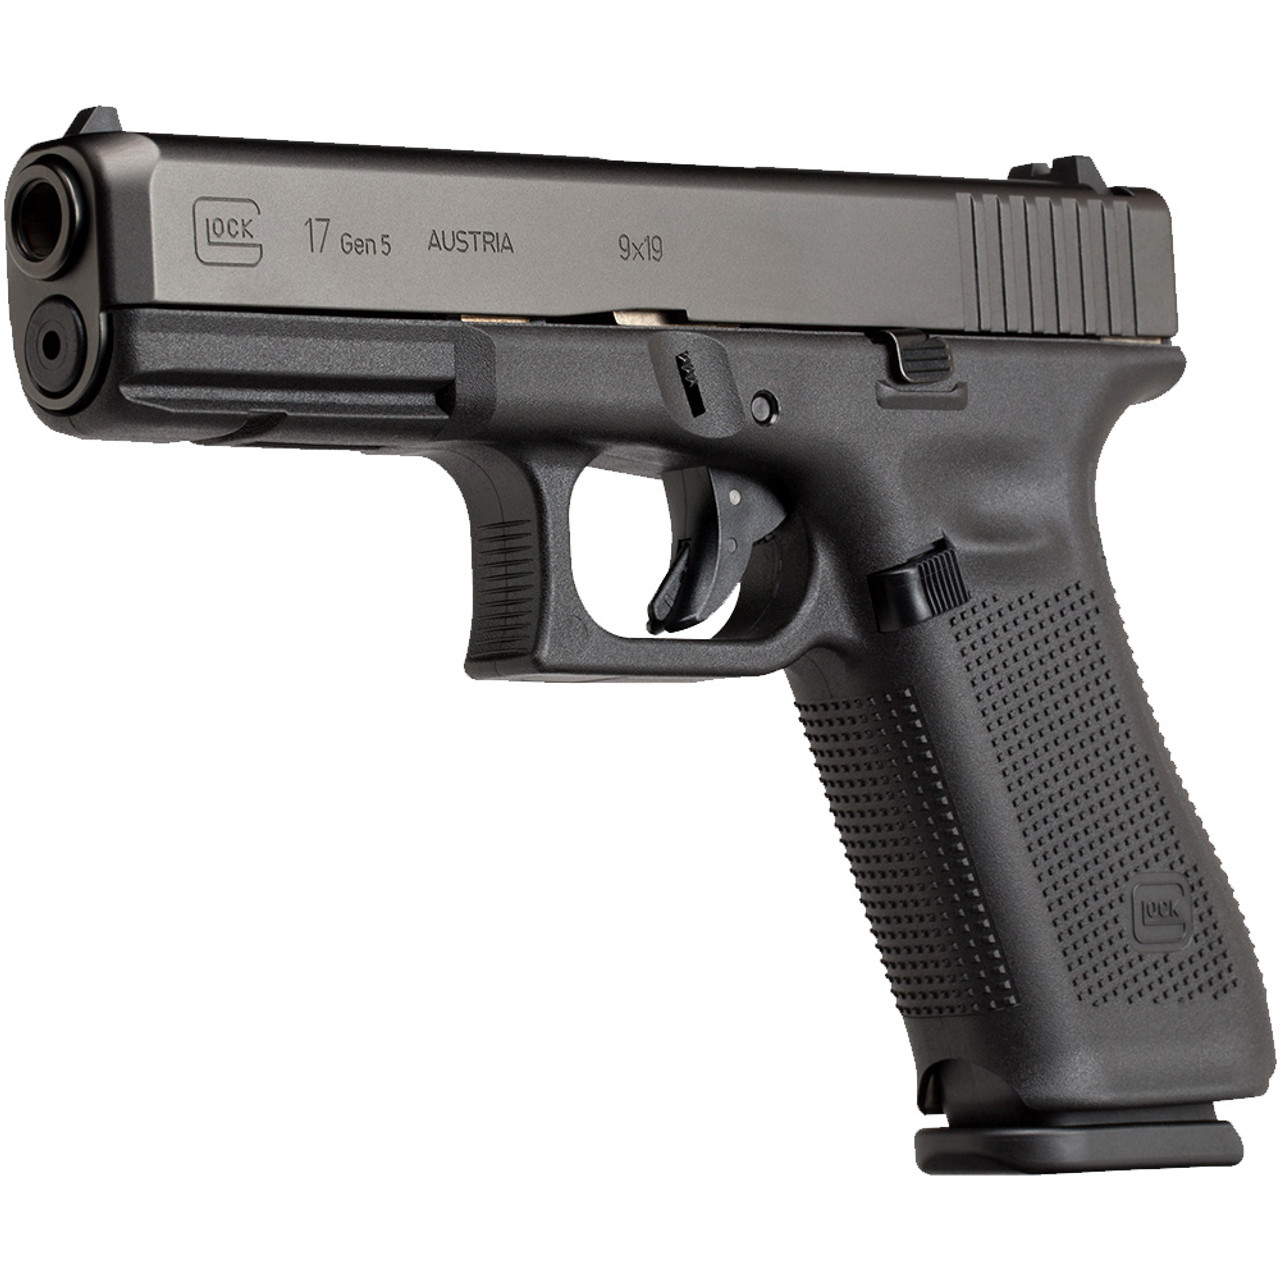 Glock 17 Gen5 Handgun with Fixed Sights - LE Only - PA1750200 - Atlantic Tactical Inc